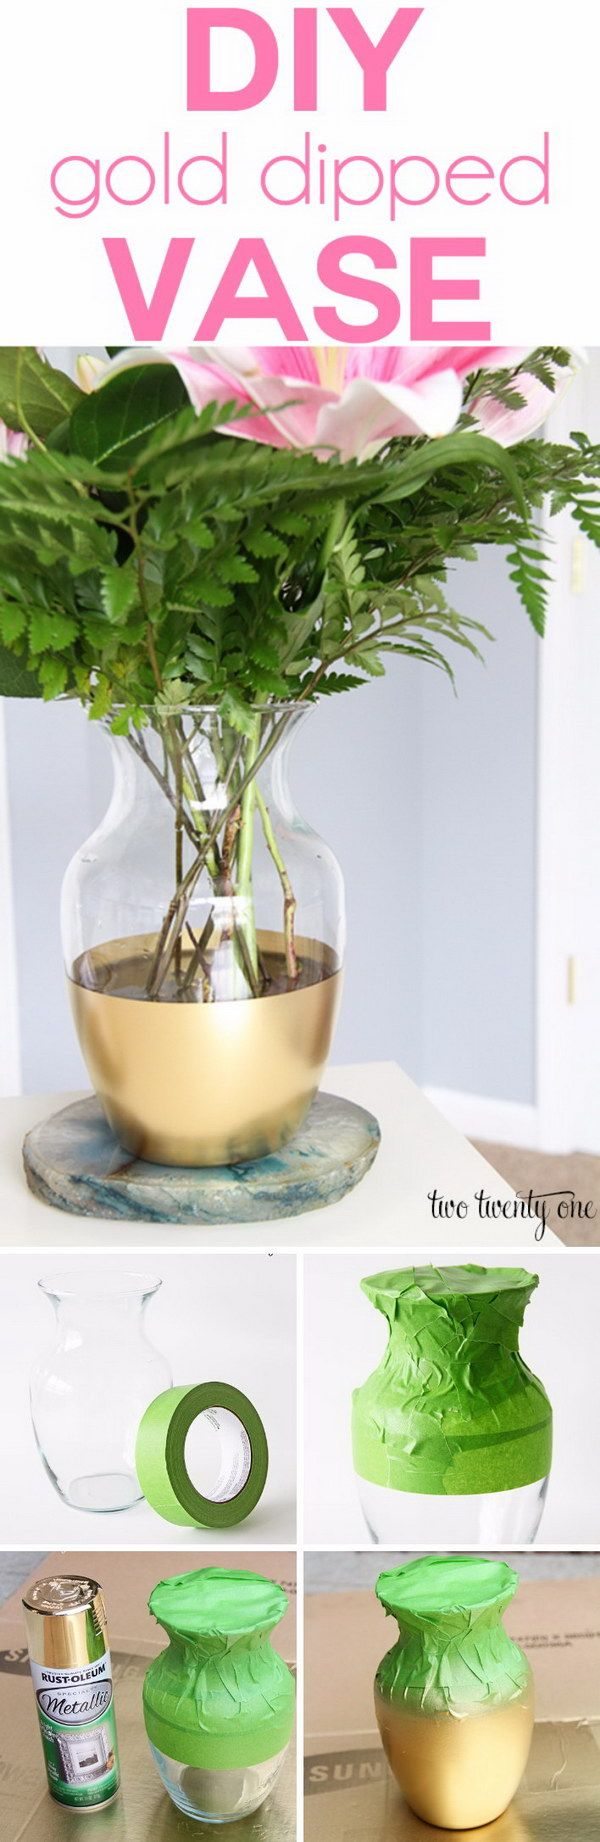 Best 25 vase decorations ideas on pinterest decorating vases amazing spray paint project ideas to beautify your home reviewsmspy